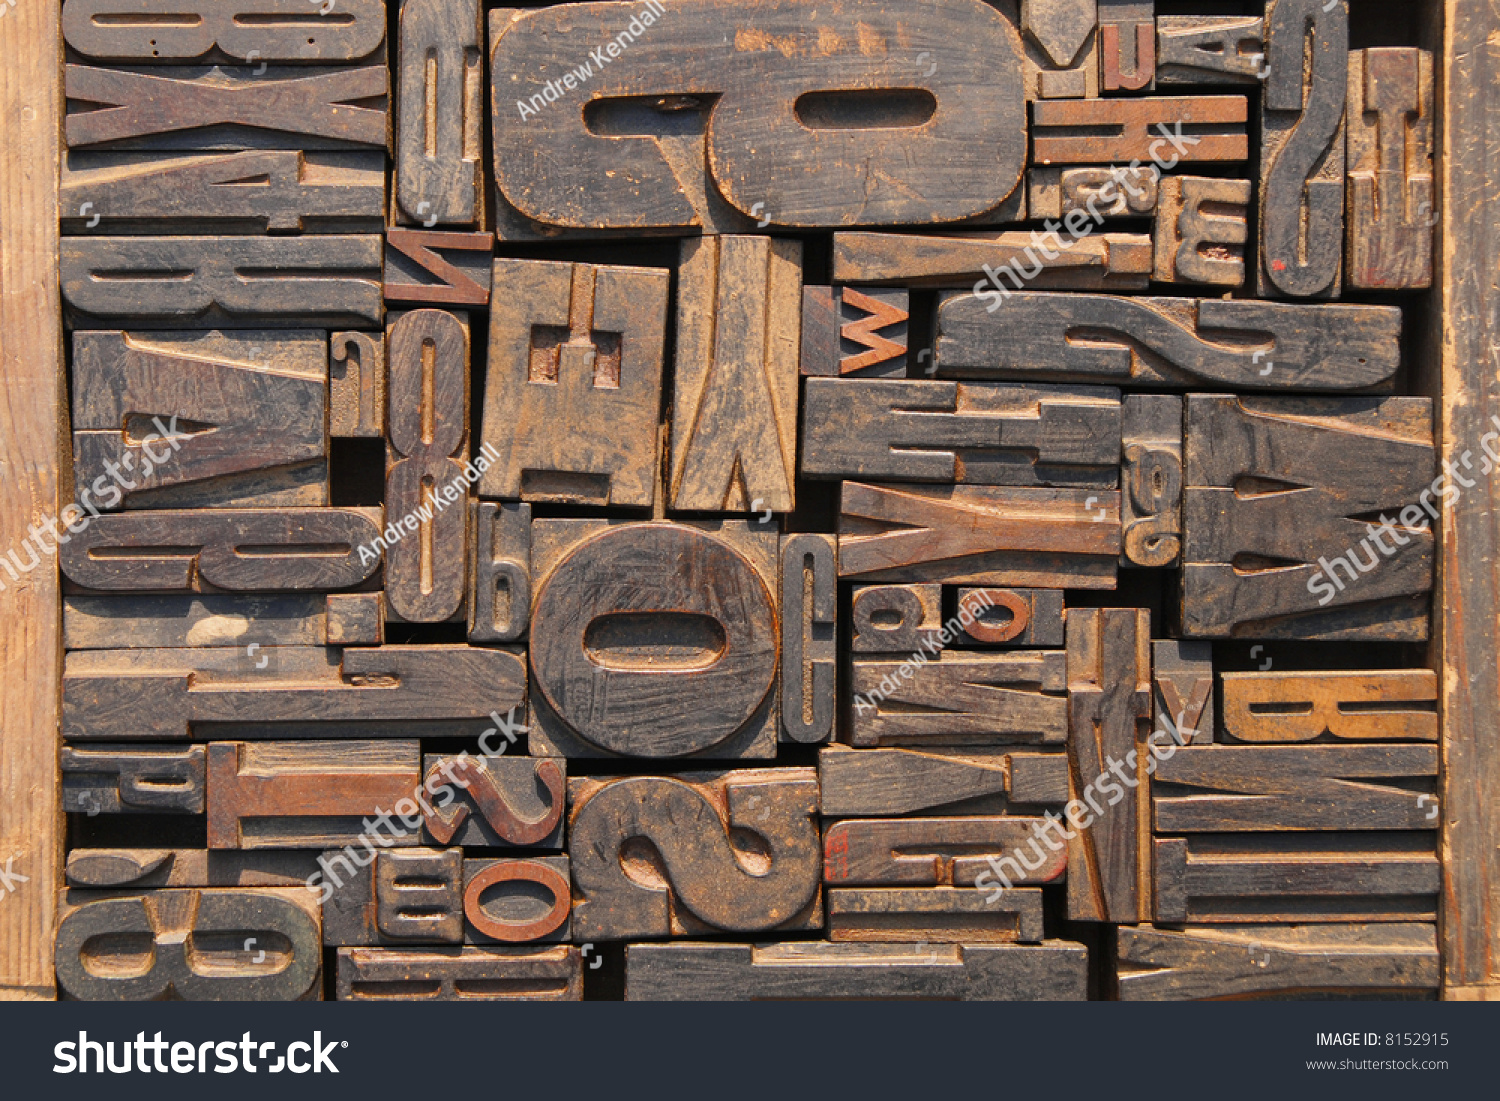 box of old wooden printing blocks with different sized letters